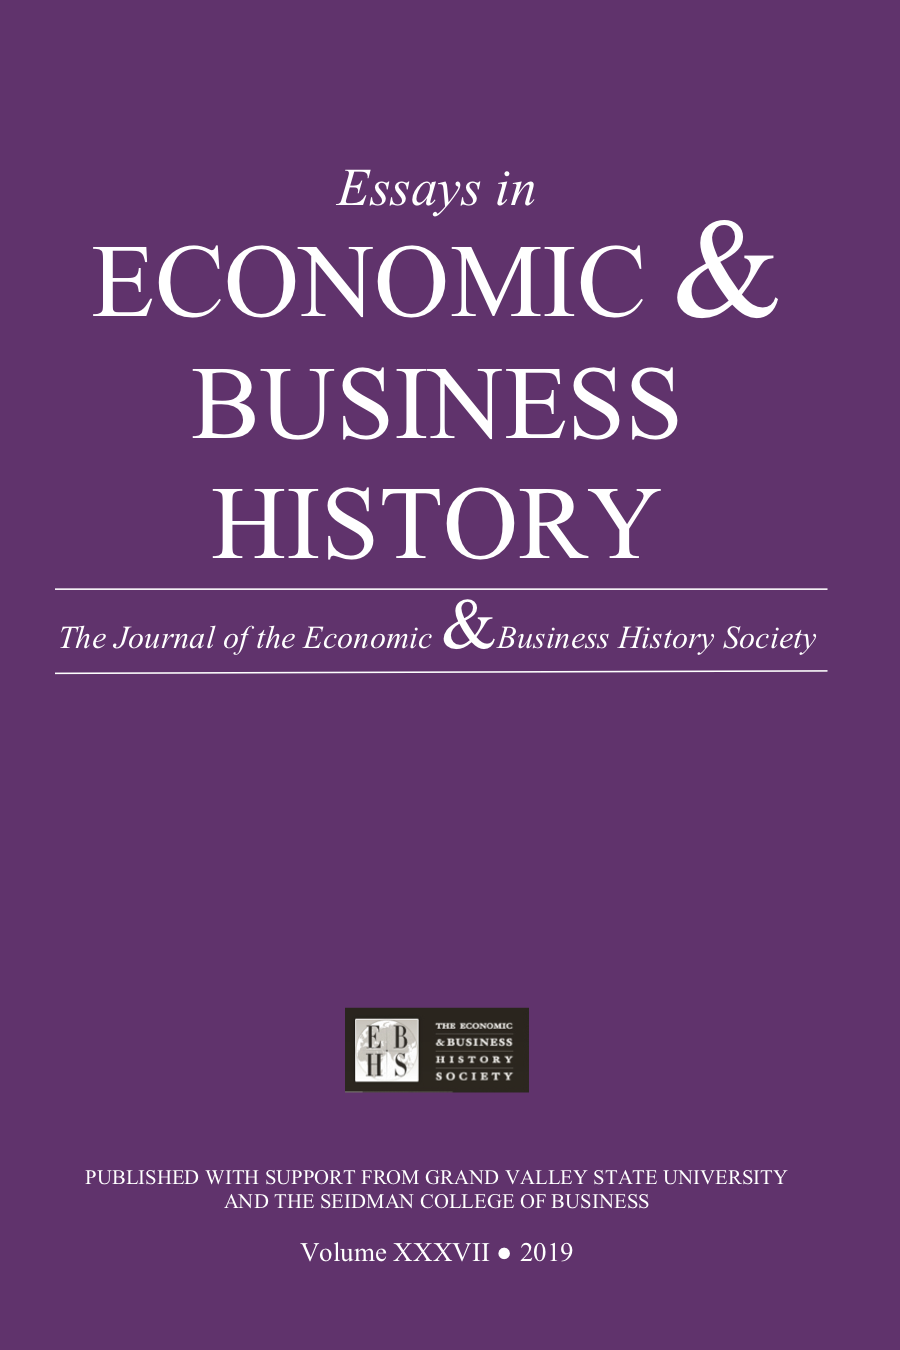 Essays in Economic & Business History 2019